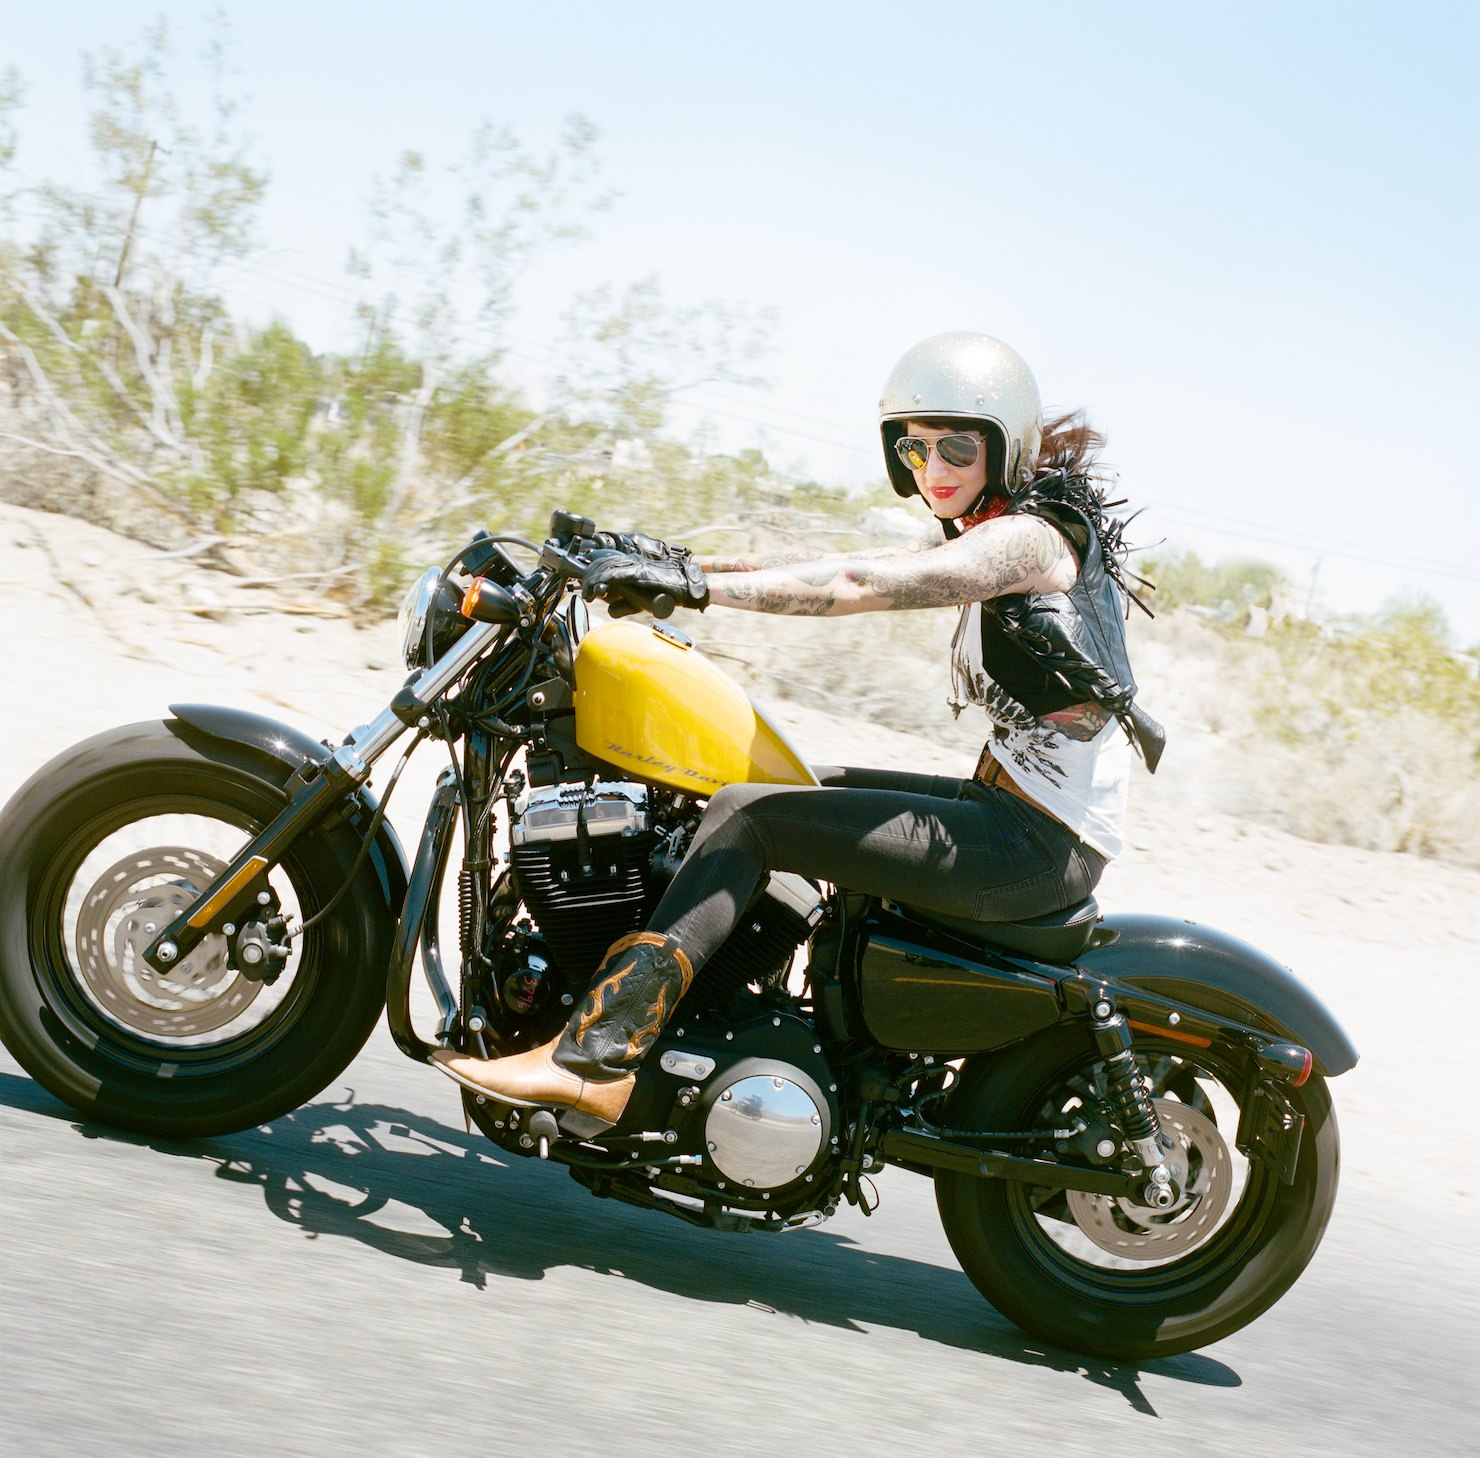 women-motorcycle-2.jpg